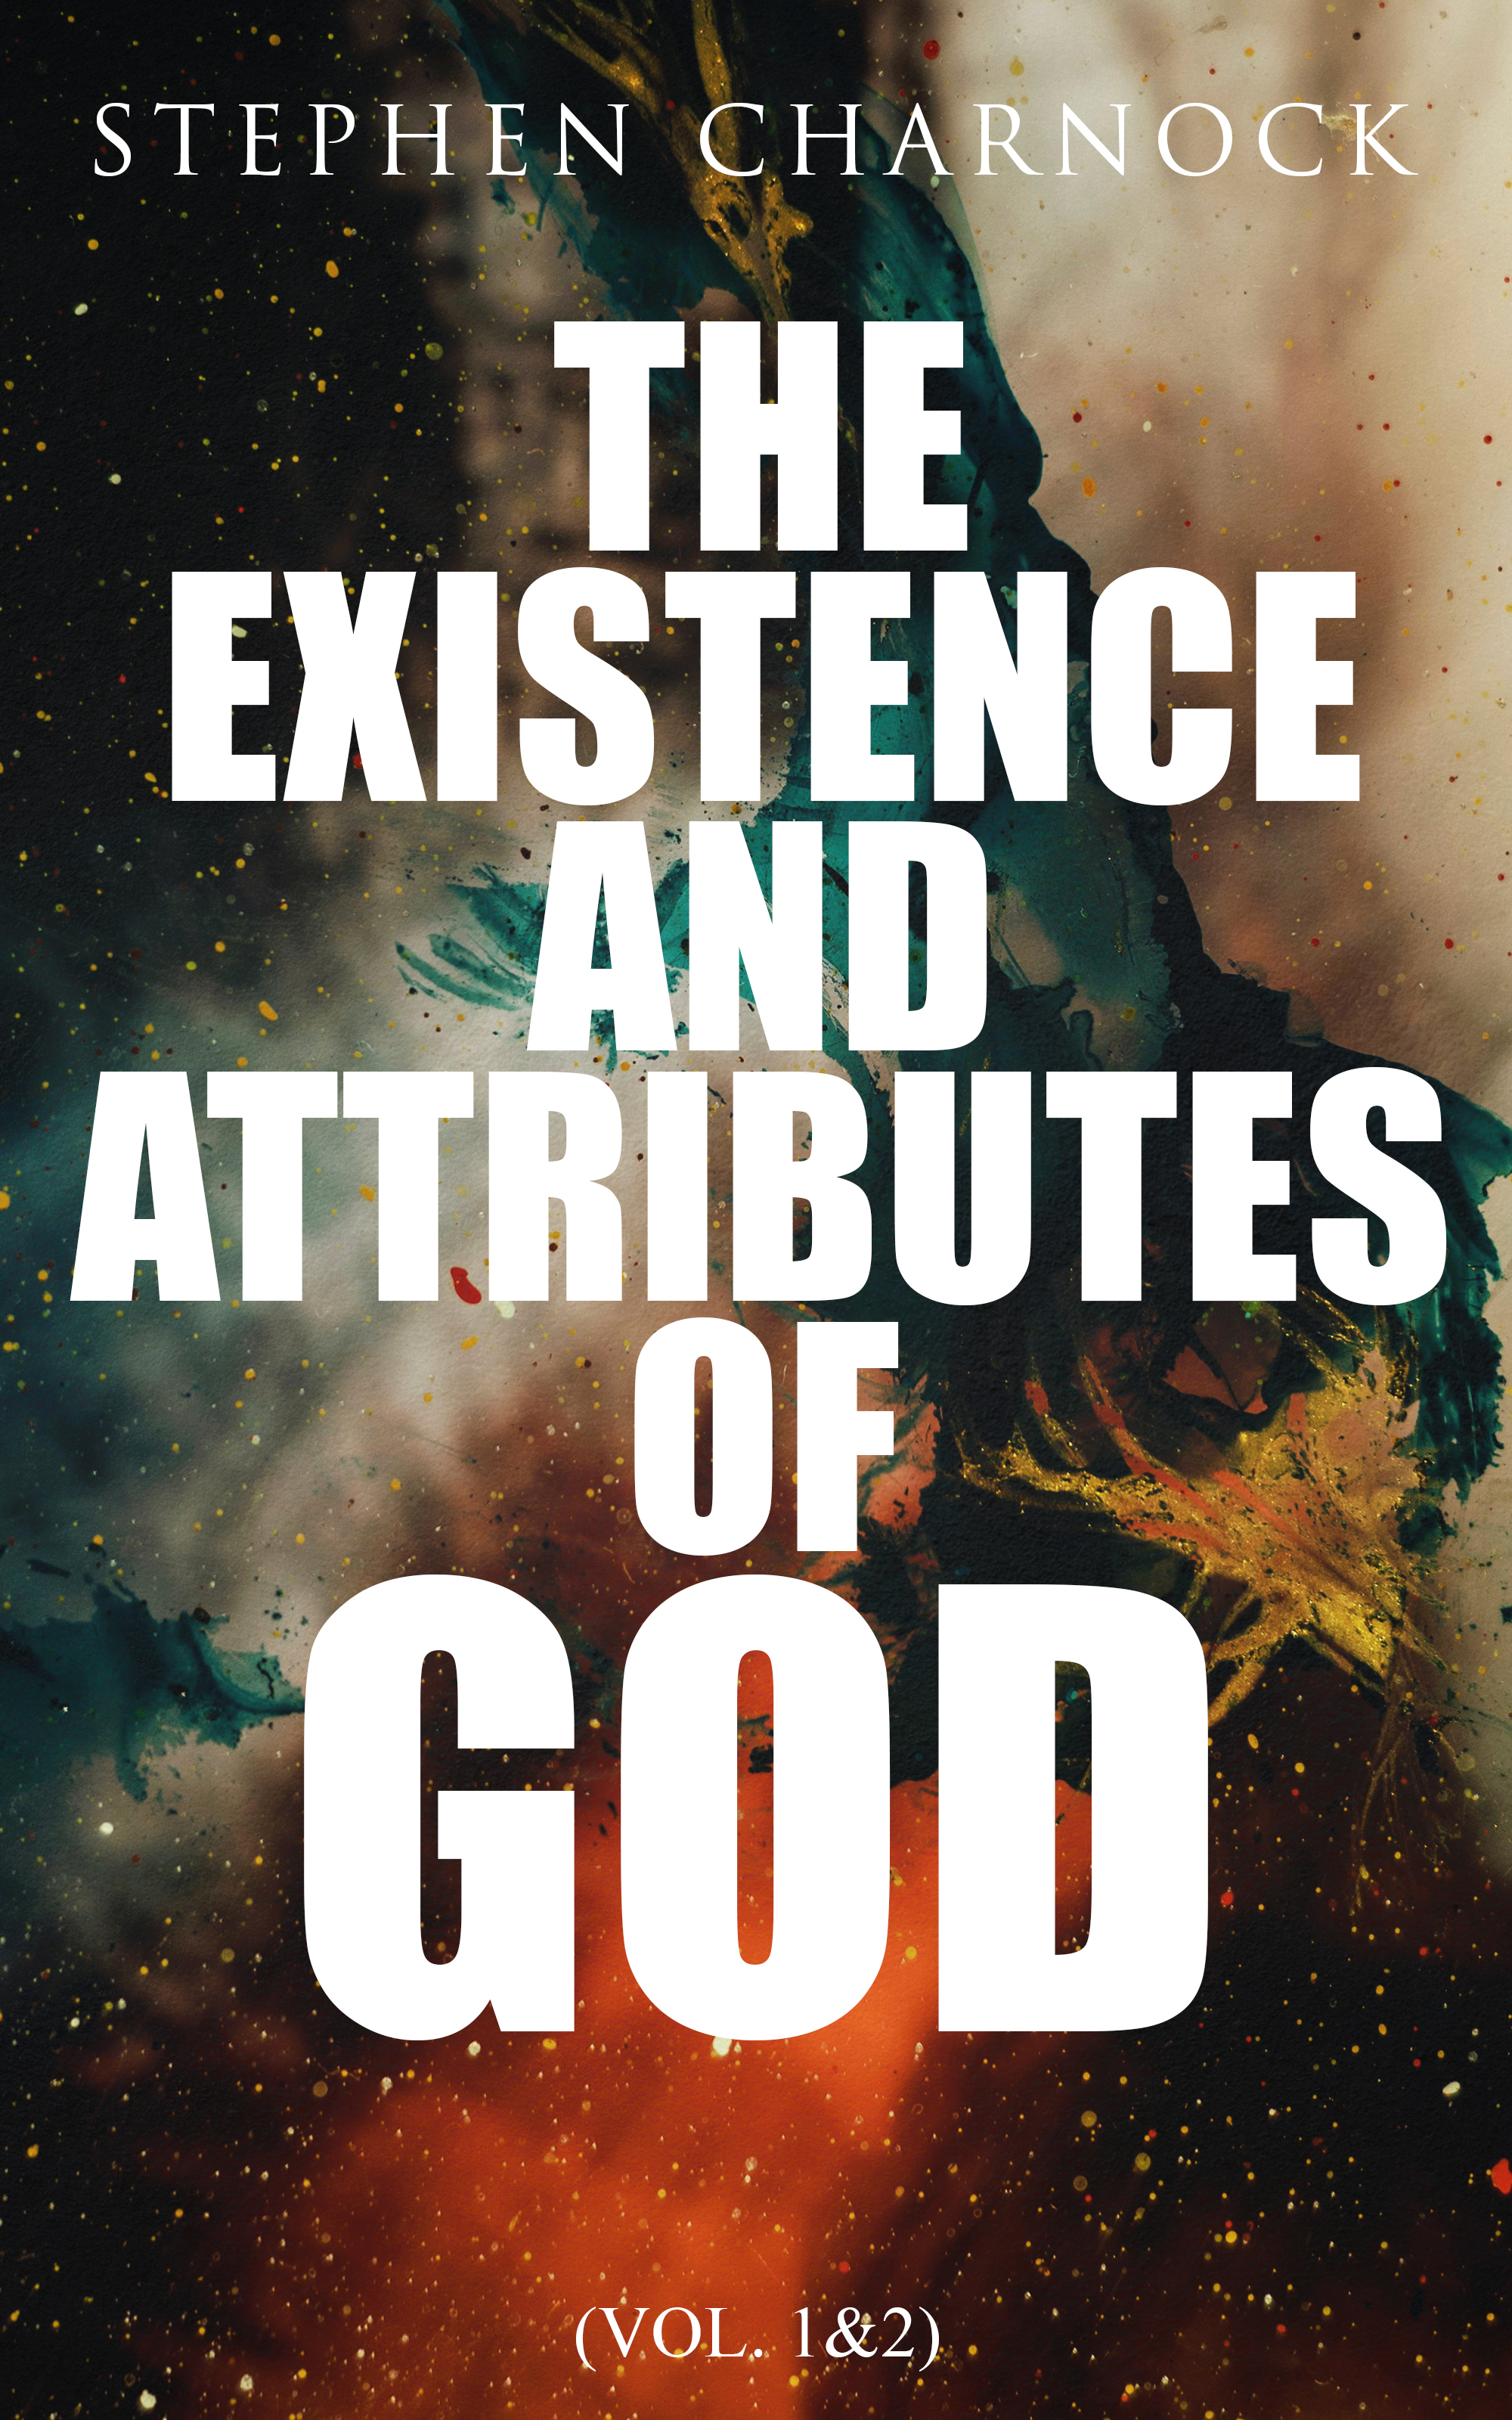 Stephen Charnock The Existence and Attributes of God (Vol. 1&2) johnson olatunde breaking the cycle of generational curses god s remedy from the yoke of curses